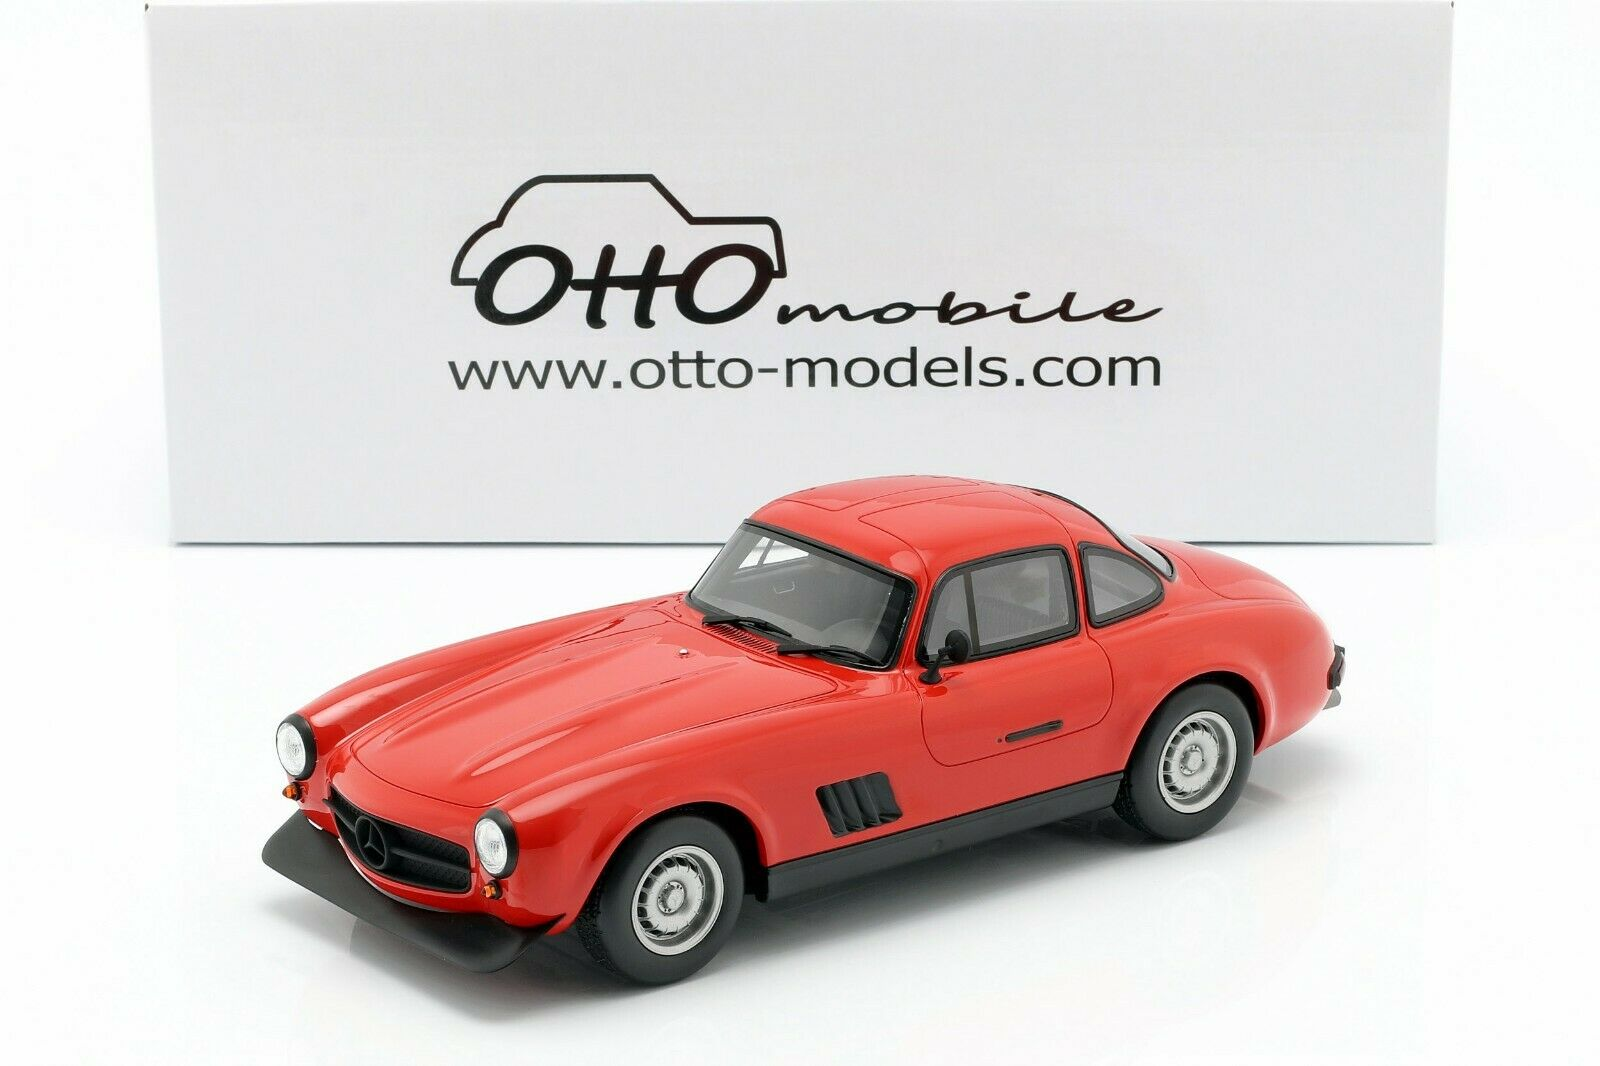 MERCEDES-BENZ AMG 300 SL rot - 1 18 - OTTO